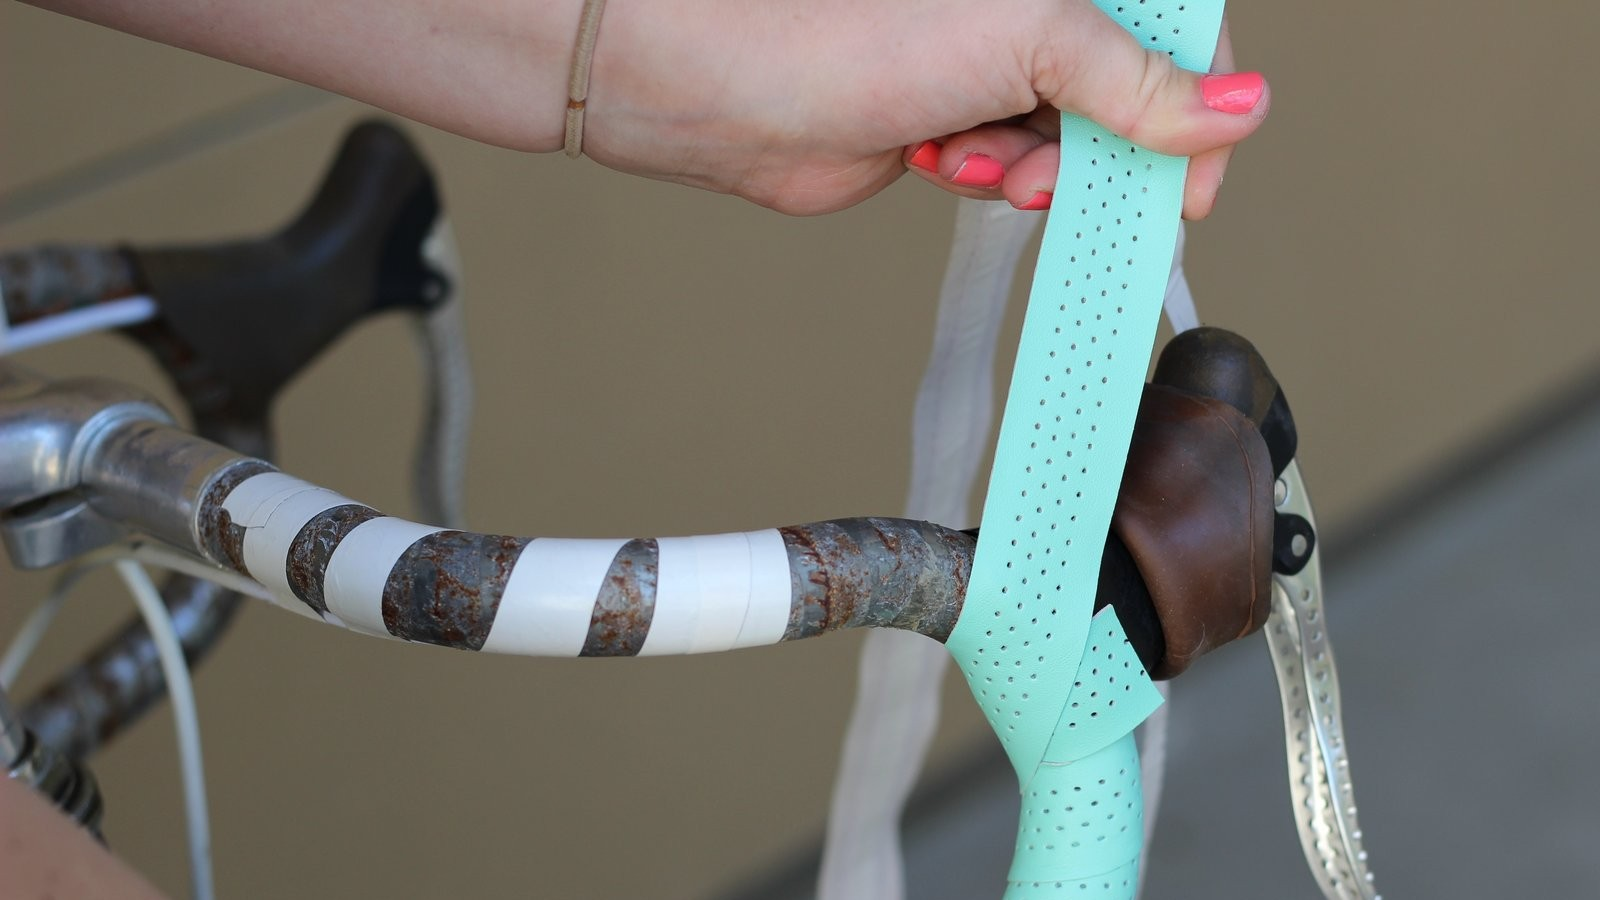 Wrapping aqua-green bar tape around a handlebar.